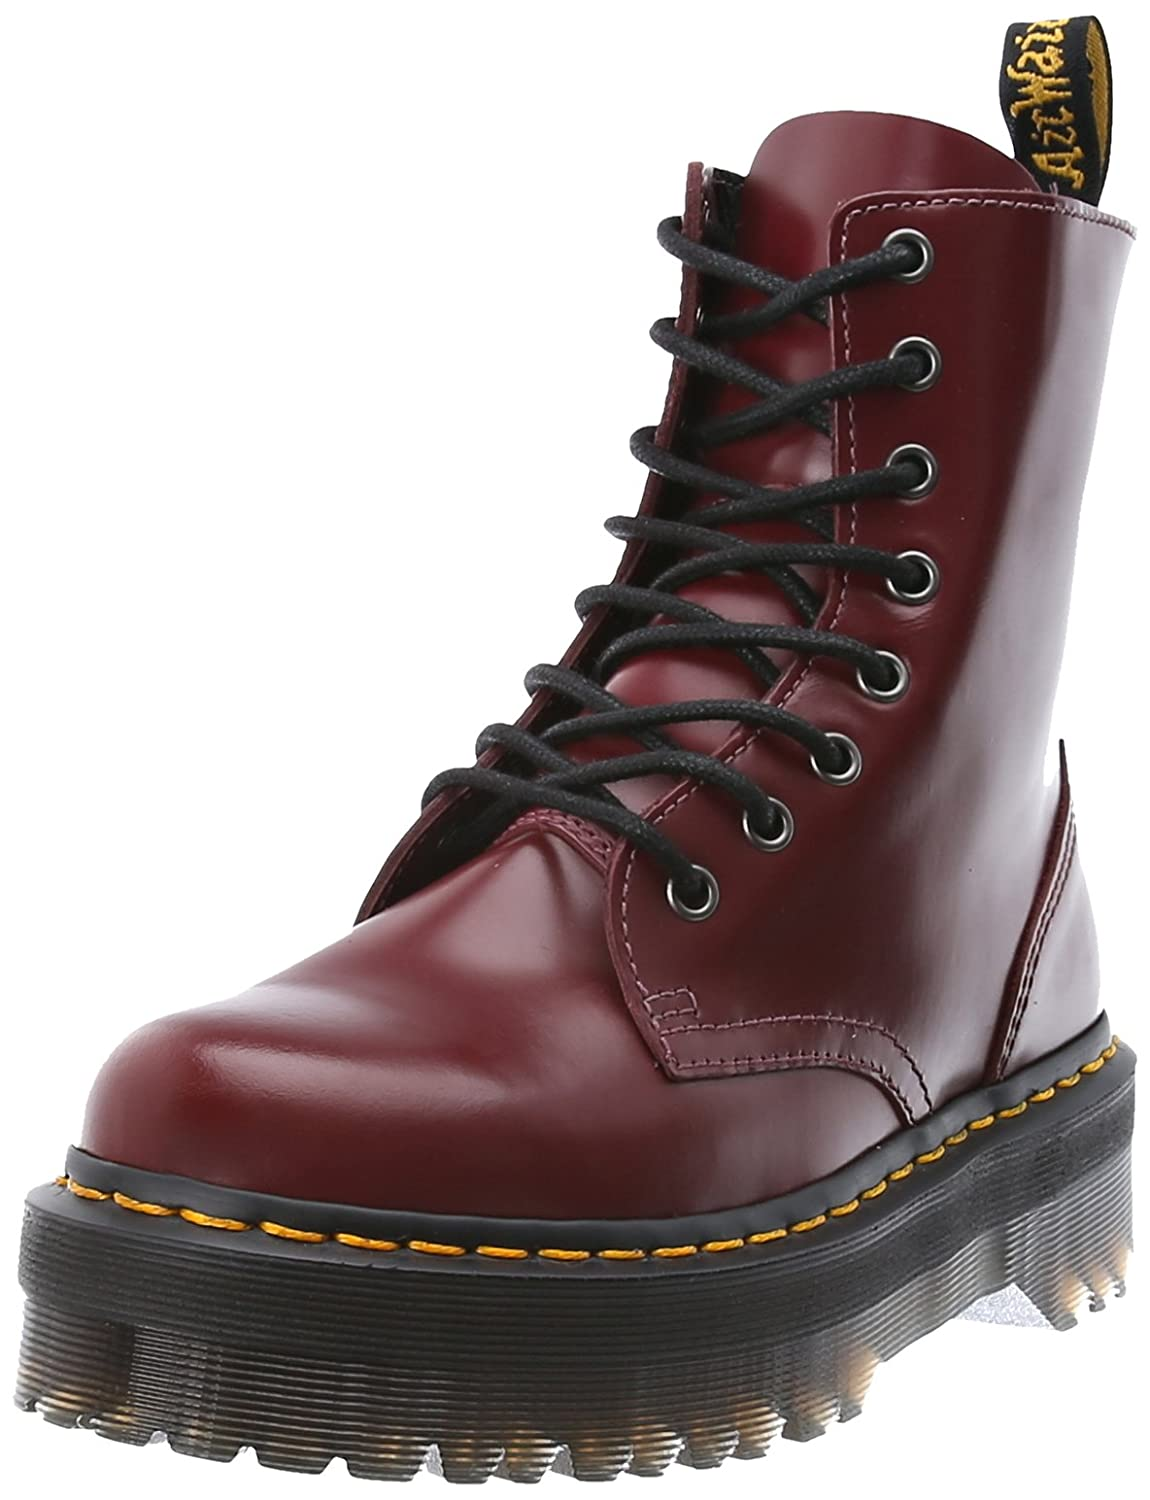 Dr. Martens Women's Jadon Boot B00BC3V5I0 4 UK/6 M US|Cherry Red Polished Smooth